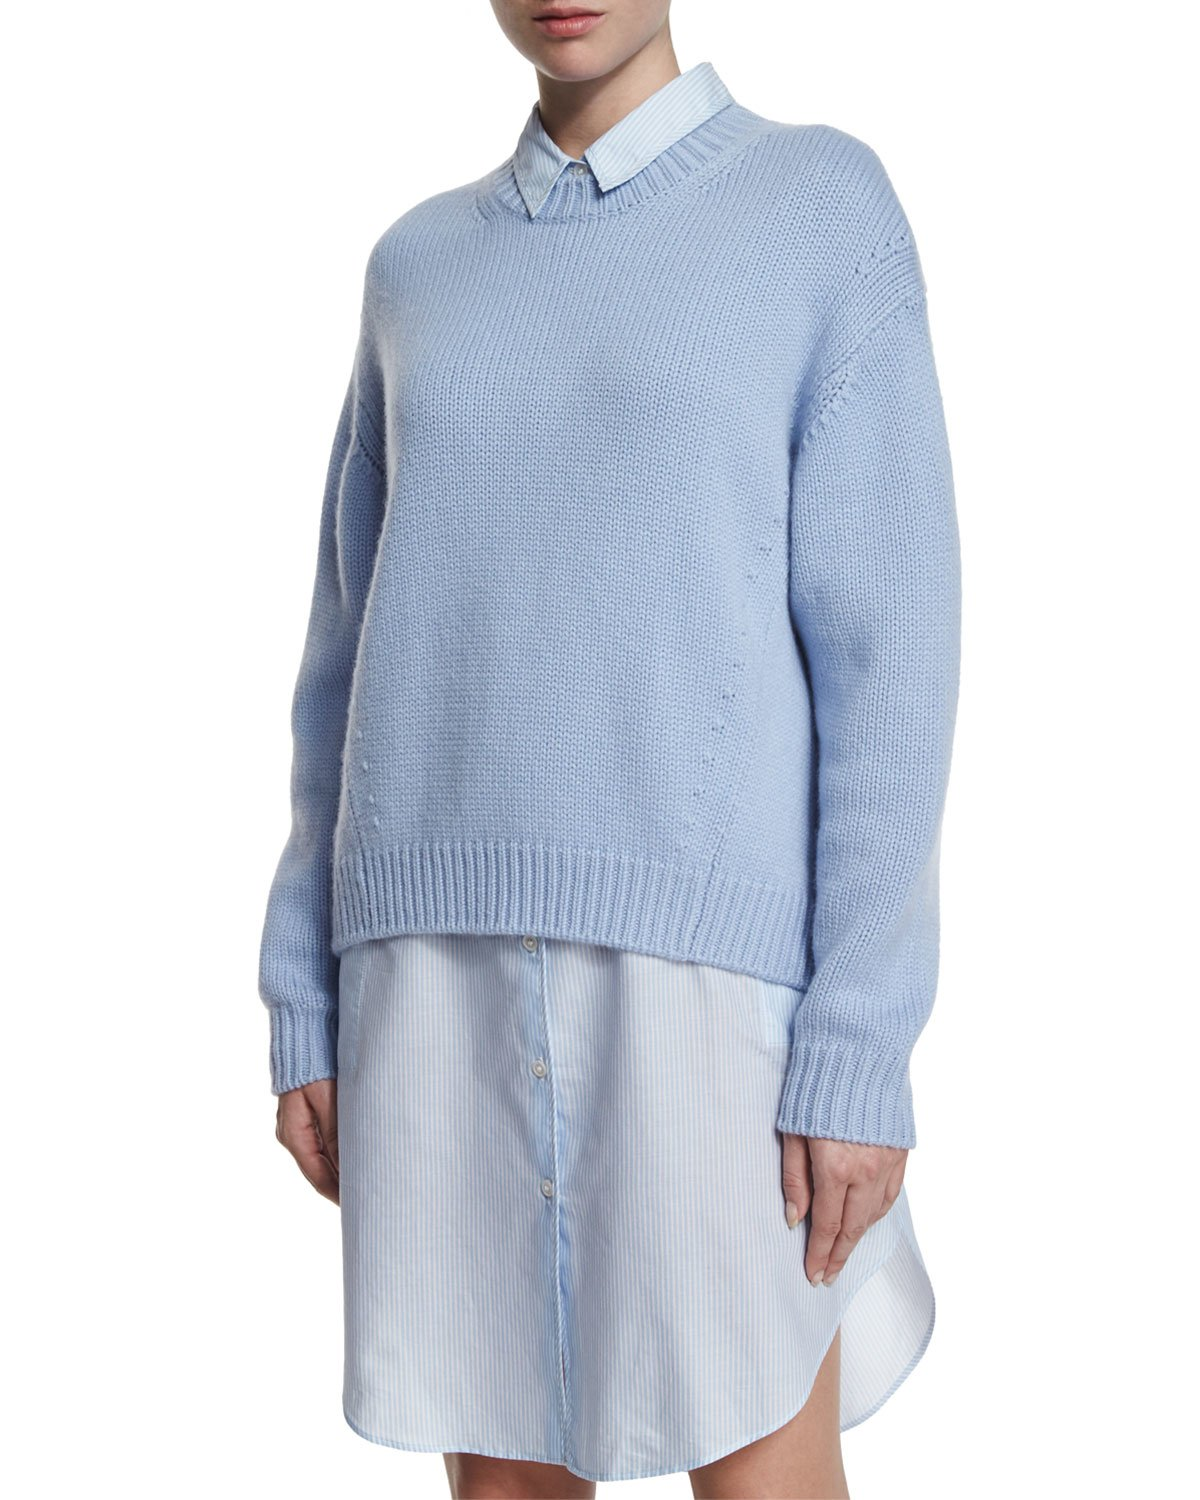 Acne studios Oversized Plush Ribbed Sweater in Blue | Lyst